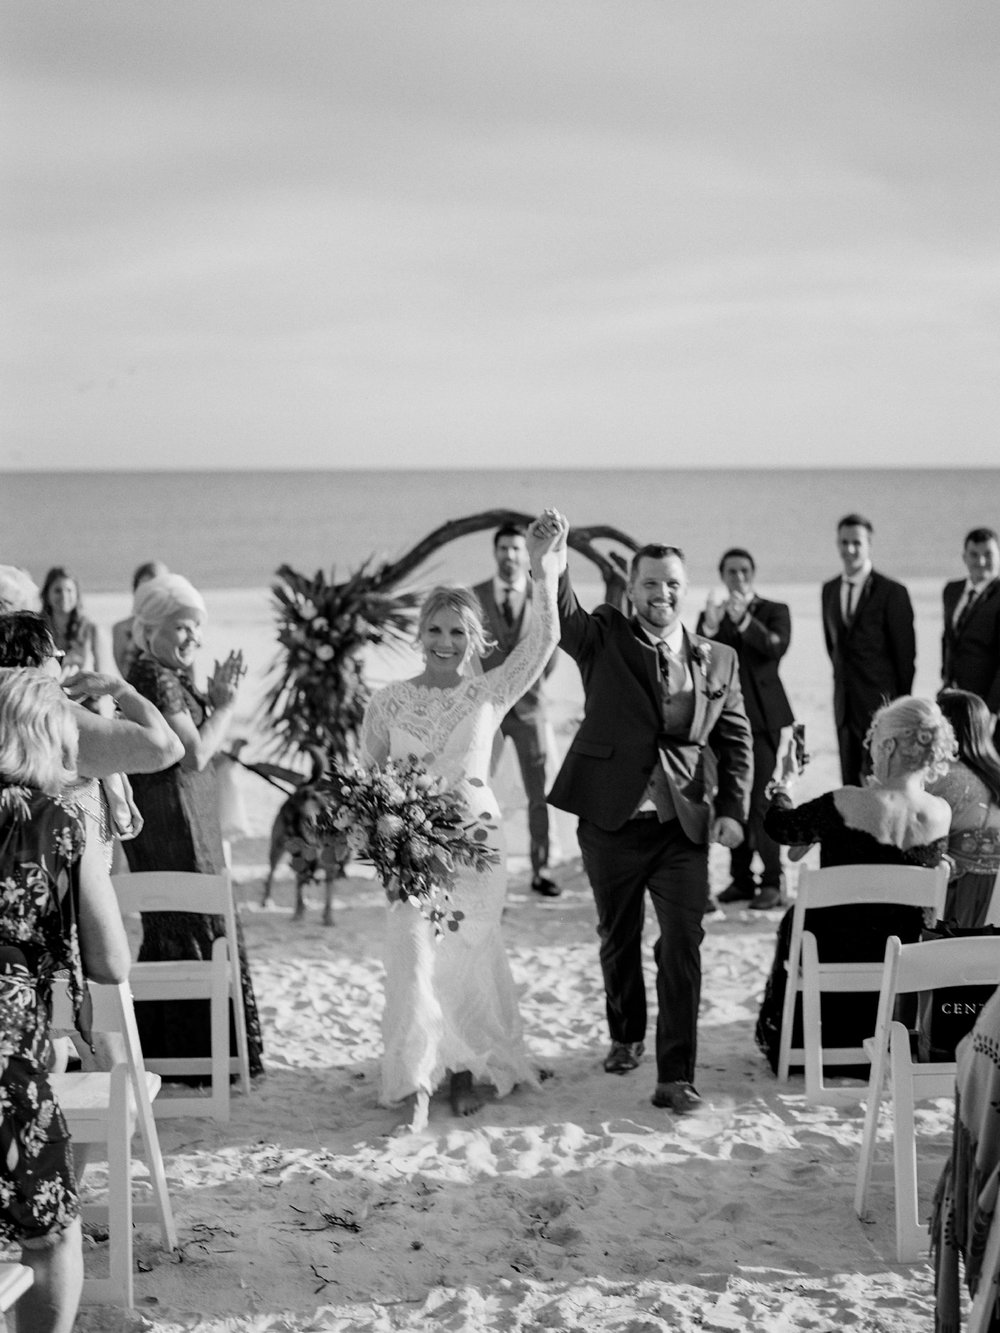 st george island wedding st george island photographer shannon griffin photography_0065.jpg